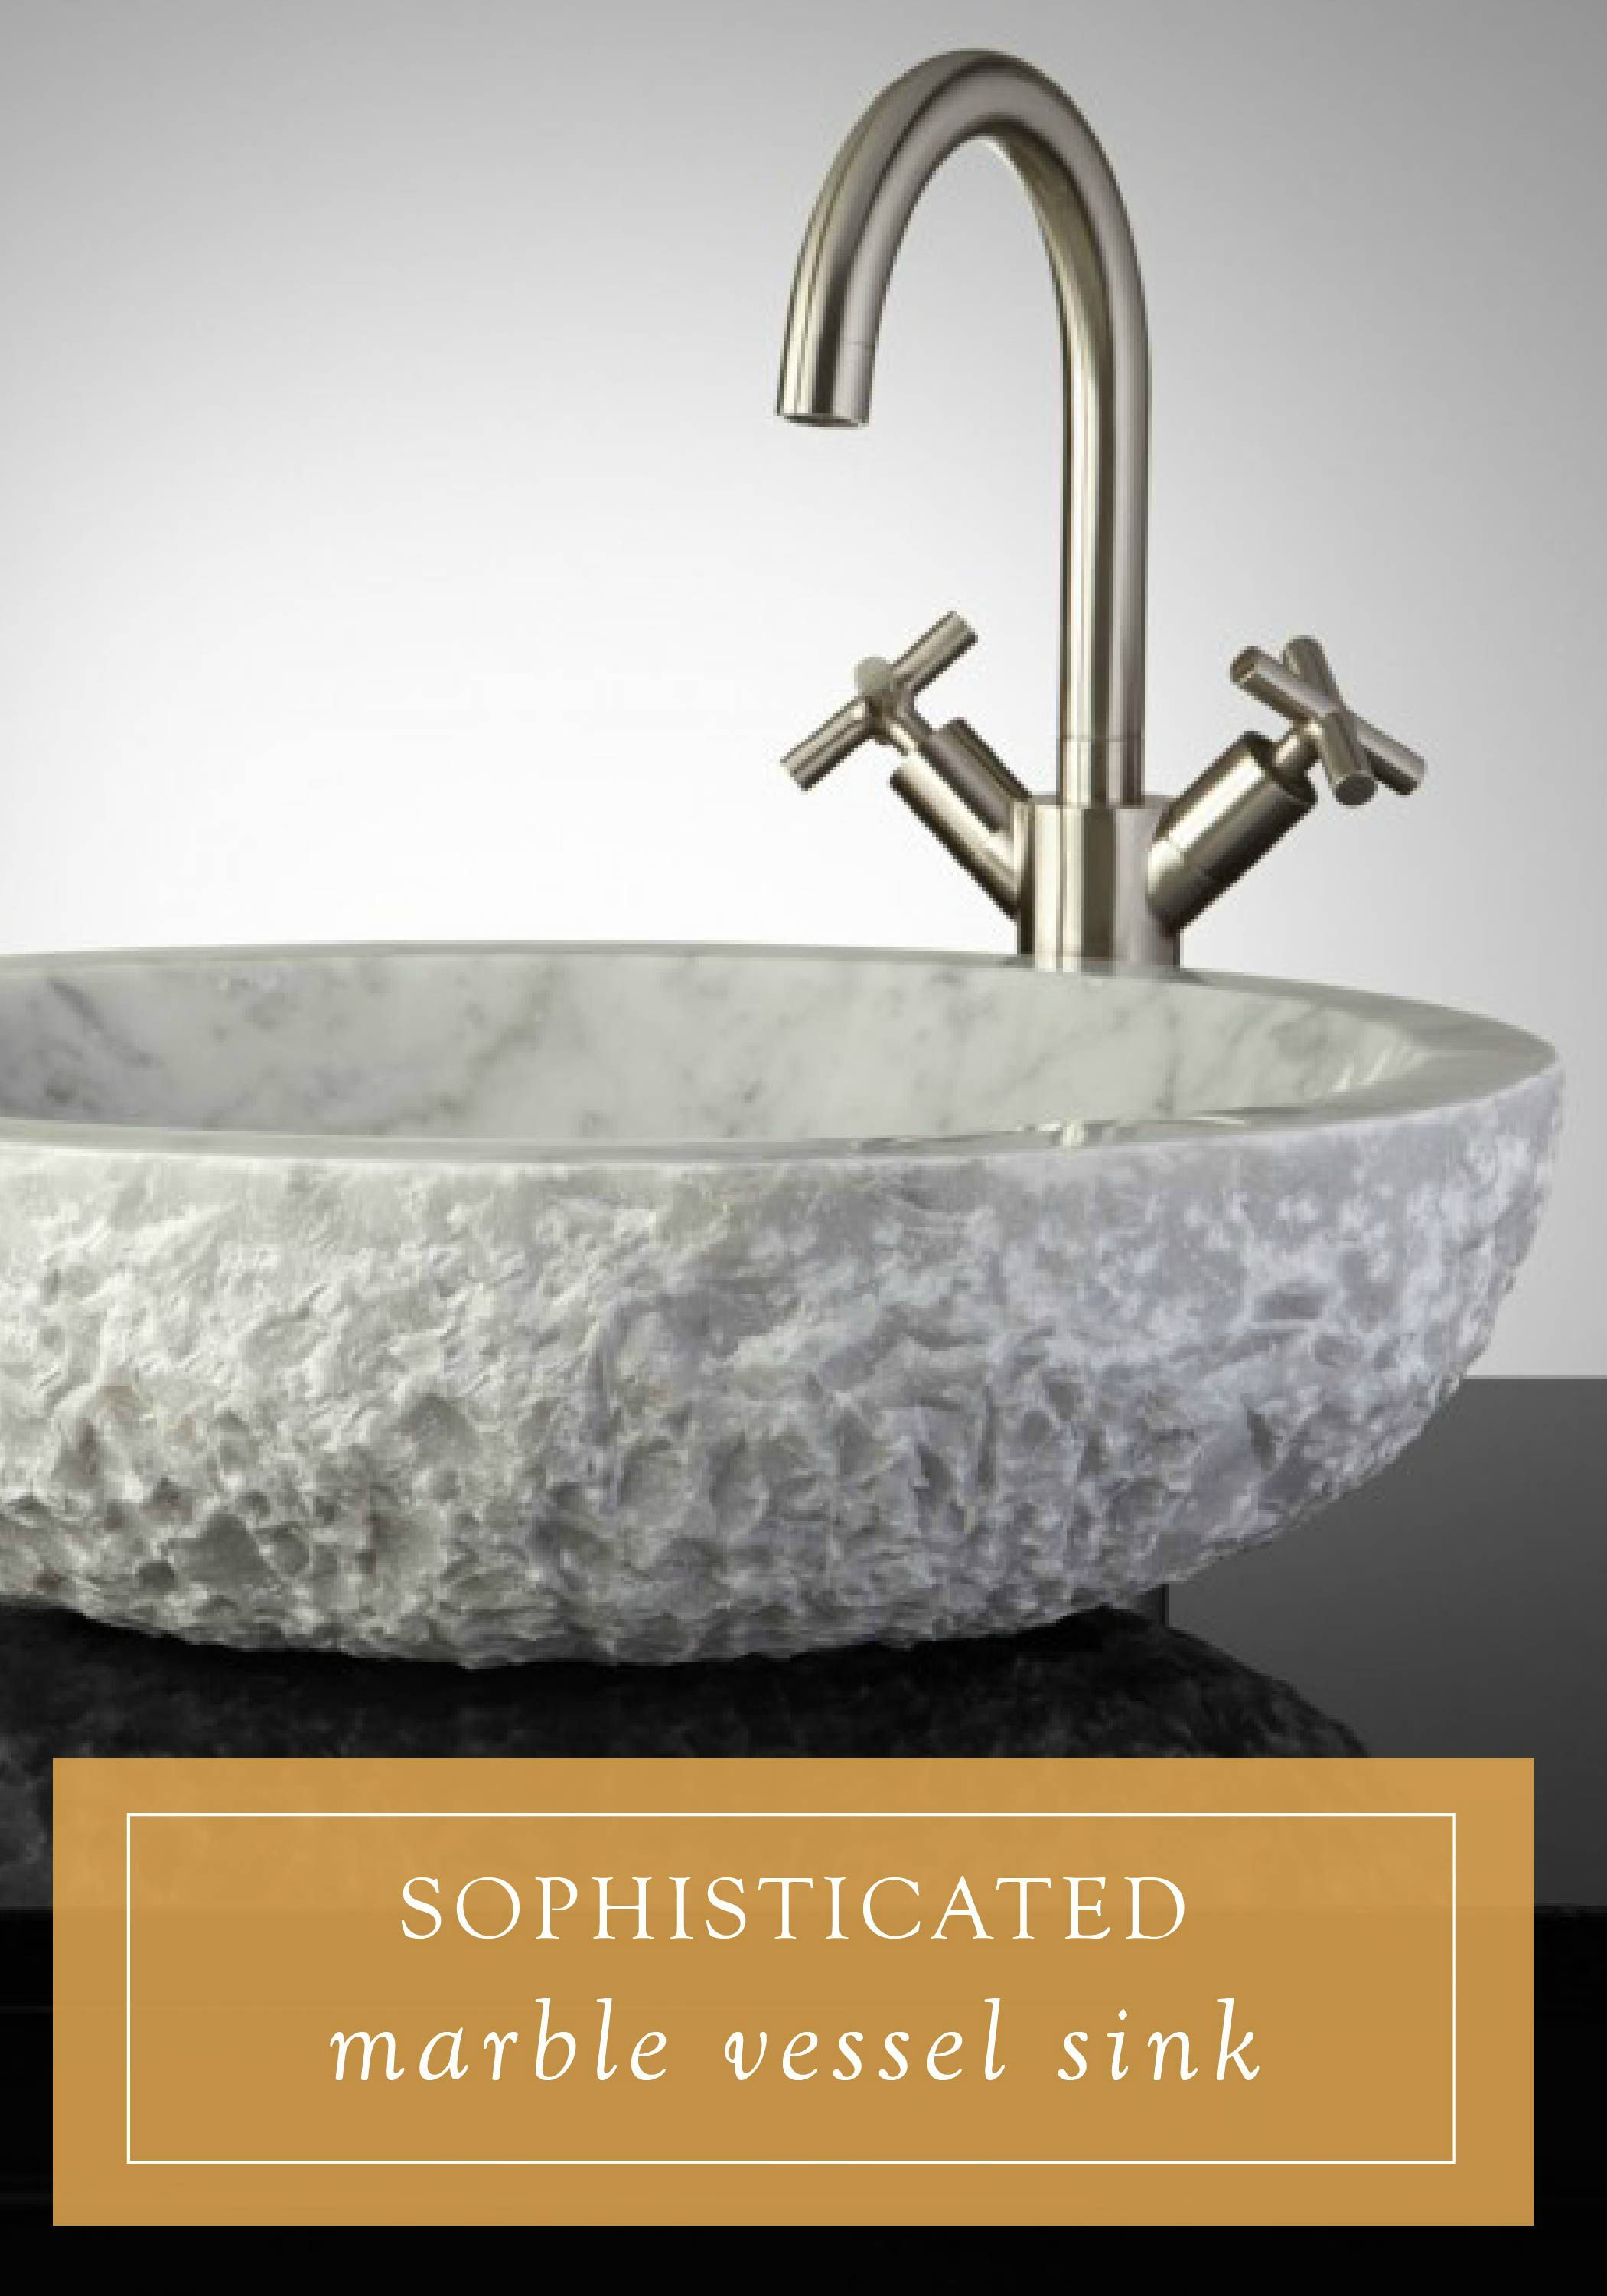 This marble vessel sink will add a touch of nature to your sophisticated bathroom. Pair it with a sleek waterfall faucet and modern vanity to complete the look.